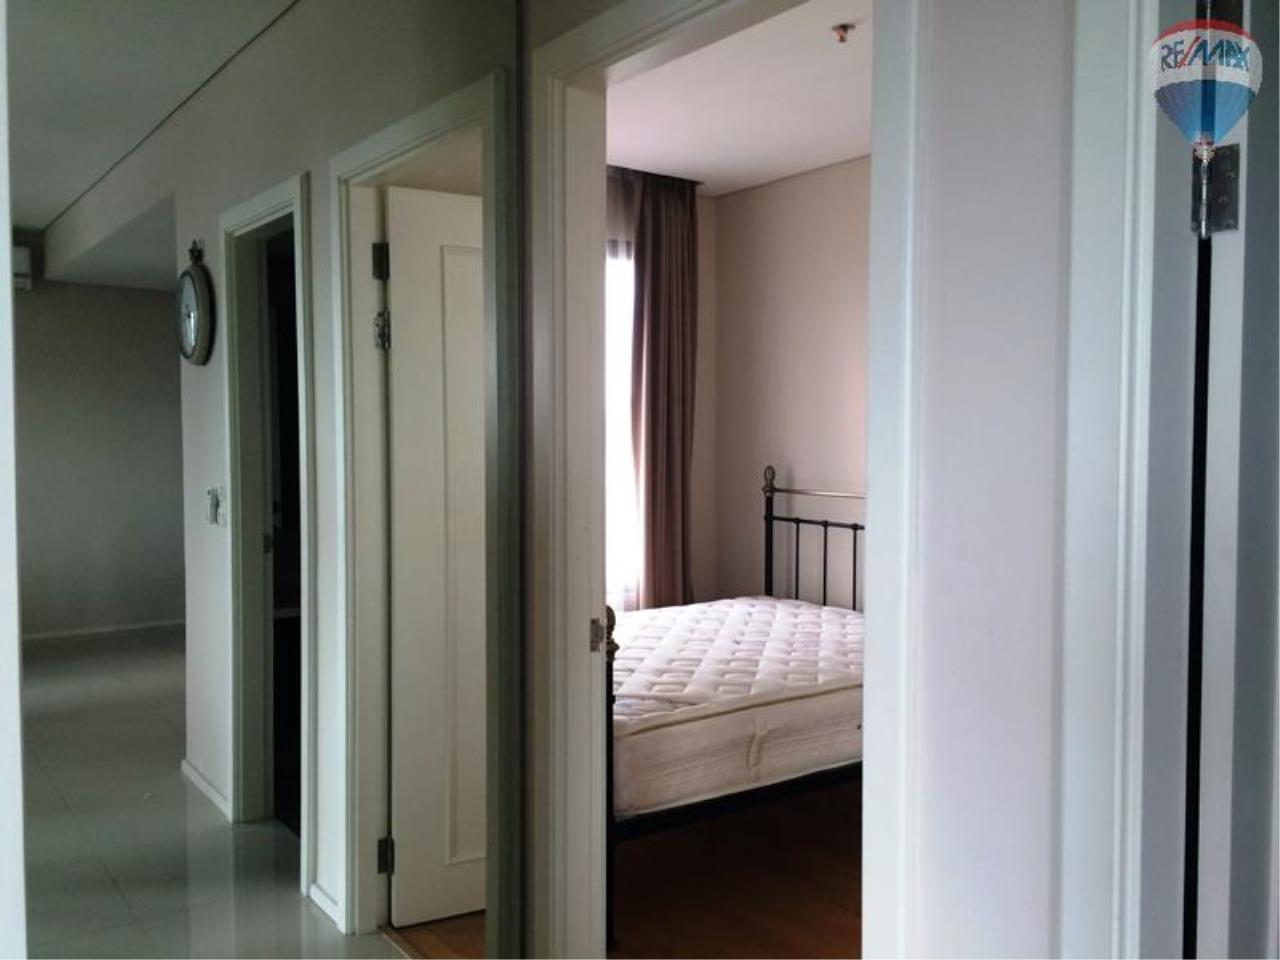 RE/MAX Properties Agency's Condo for RENT 2B/2B on Asoke, 86 sq.m., good view close to Airport link 7